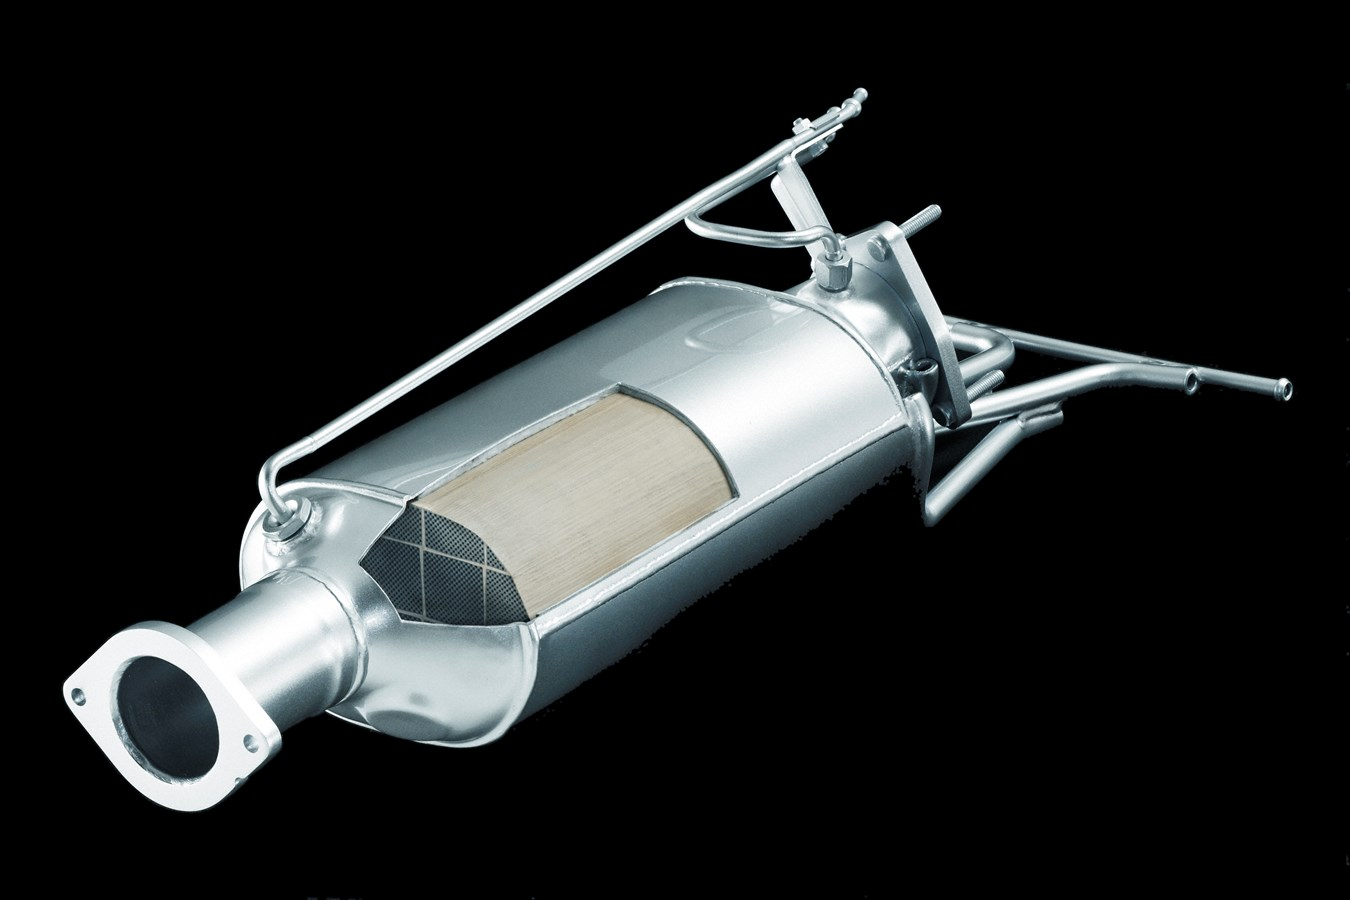 New Generation Of Five Cylinder Diesel Engines From Volvo Cars Exhaust Diagram V70 Parts Car Group Global Media Newsroom